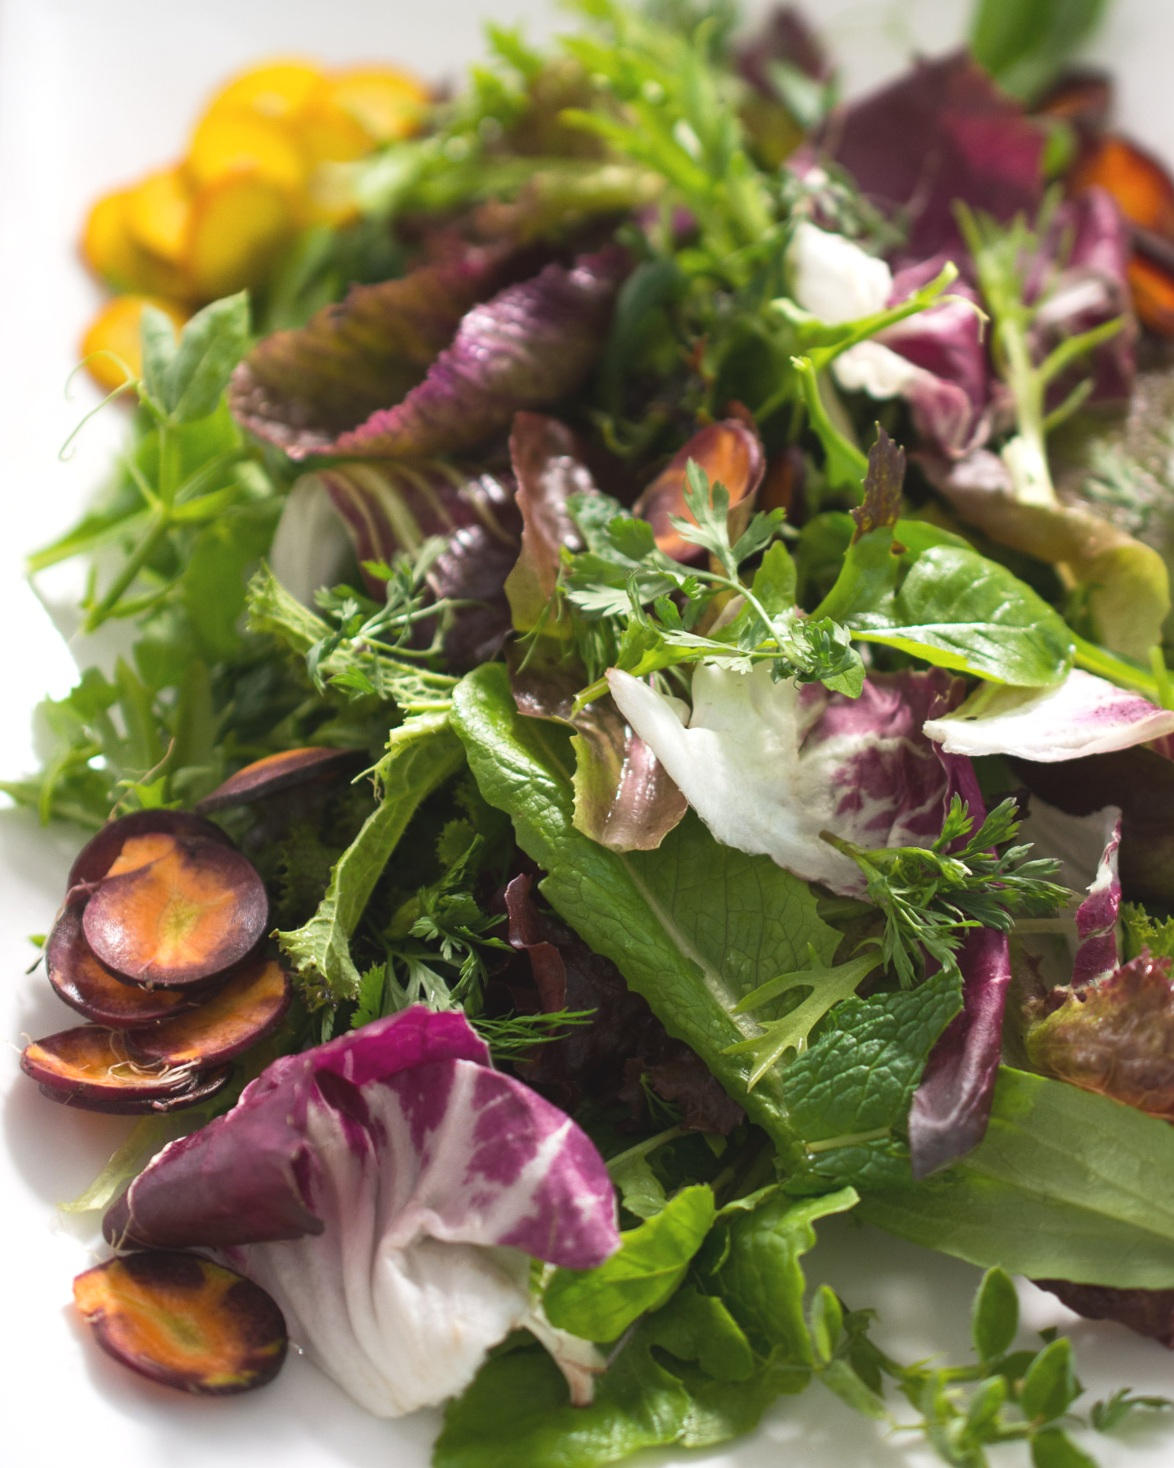 Early season greens with herbs and shaved golden beets.